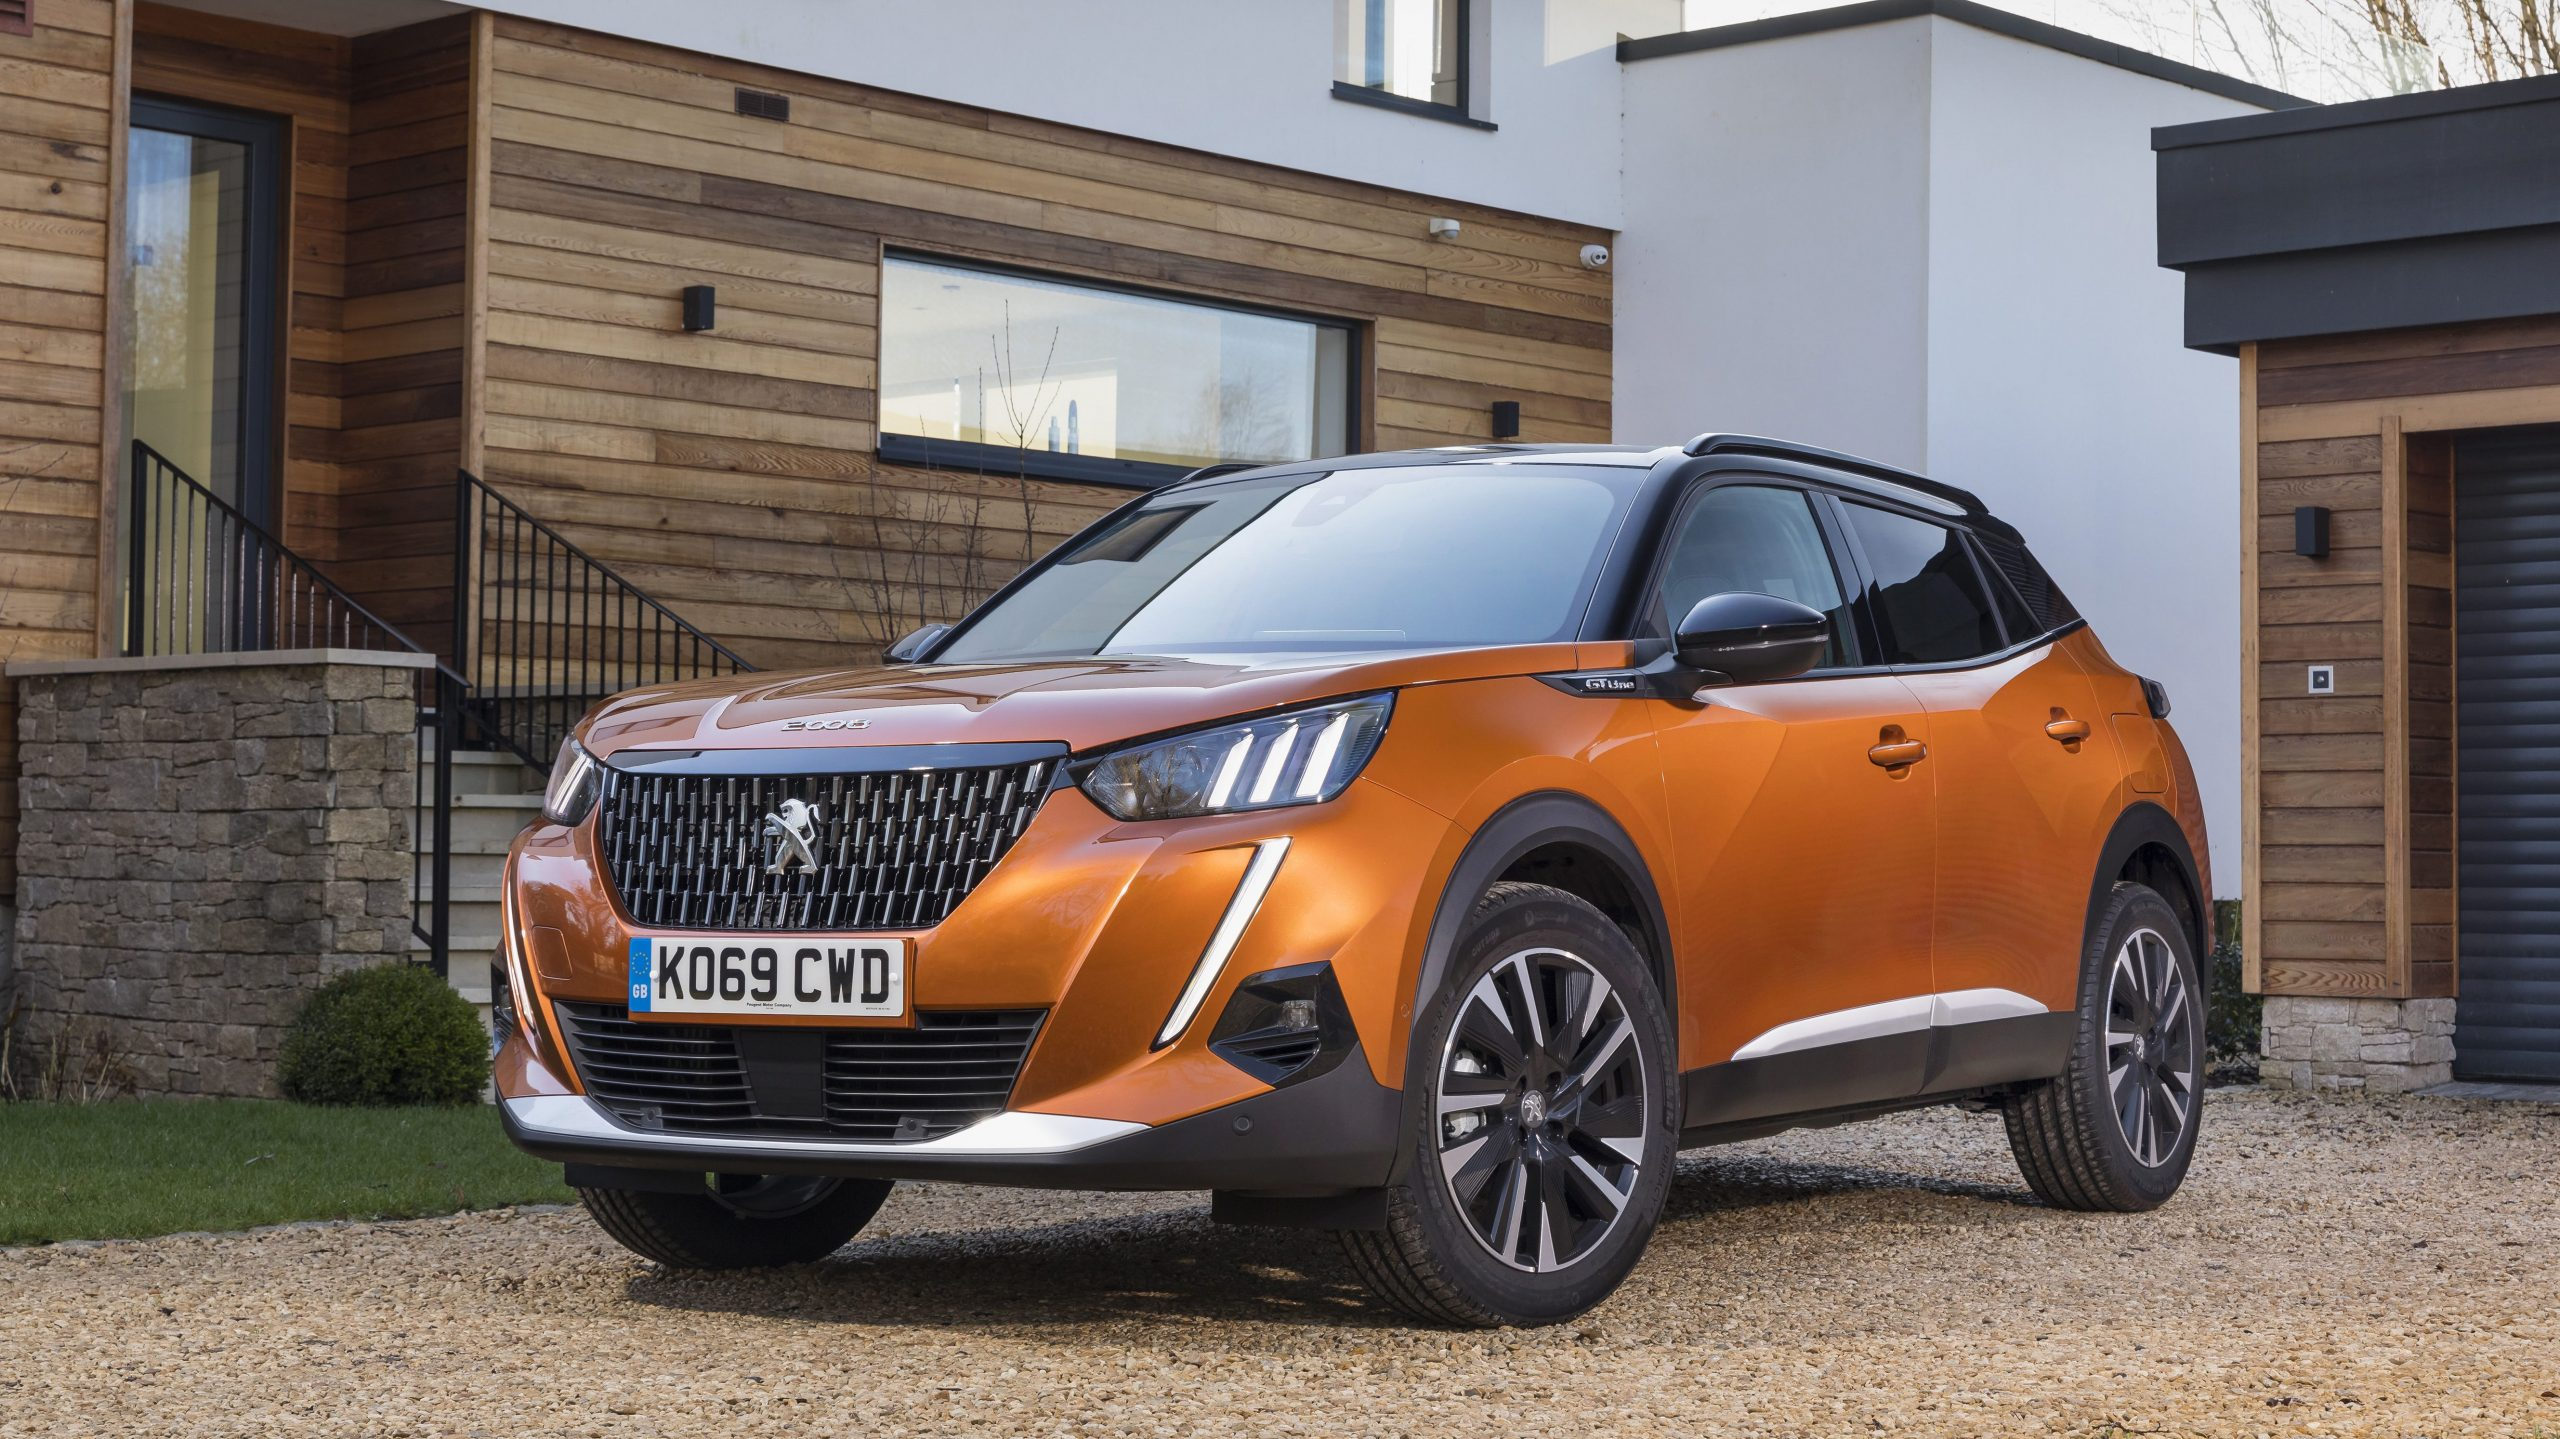 sporty looking Peugeot 2008 suv